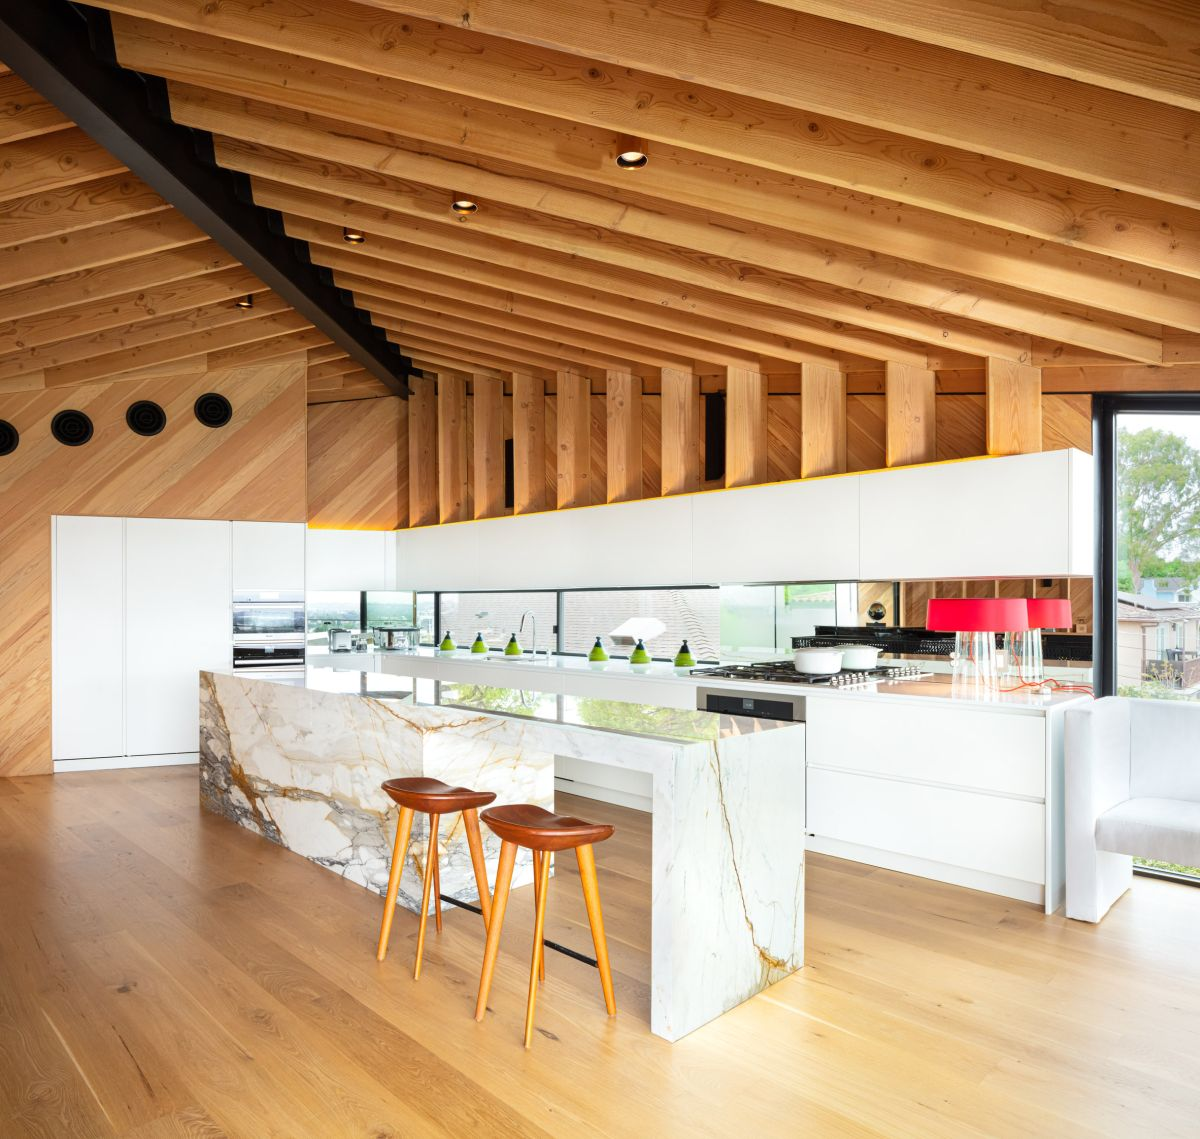 The kitchen is placed along one of the walls and has a gorgeous island made of veined stone